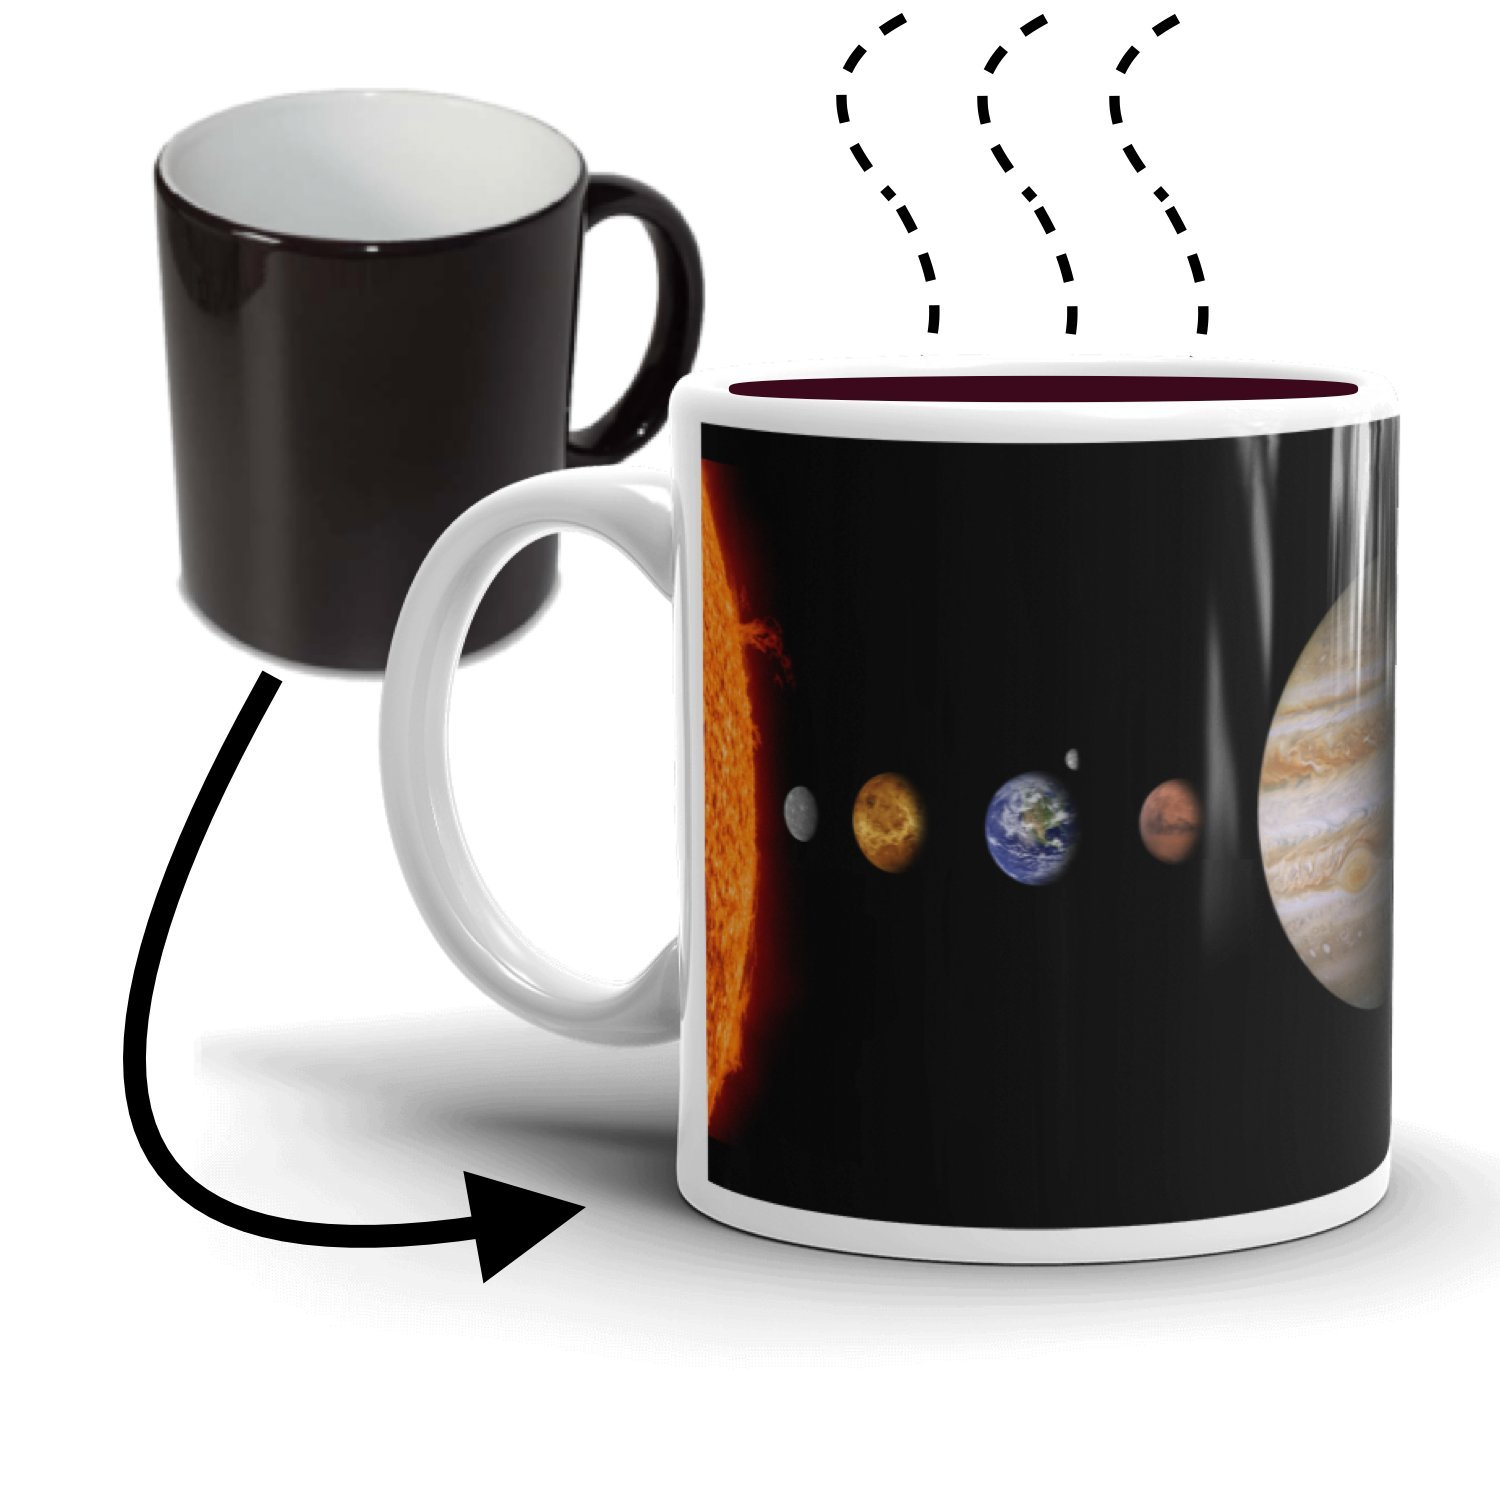 The Solar System Coffee Mug (11oz) | Heat Sensitive Color Changing | Unique gift idea for mom dad best friend sister brother teacher professor student science nerd tech geek